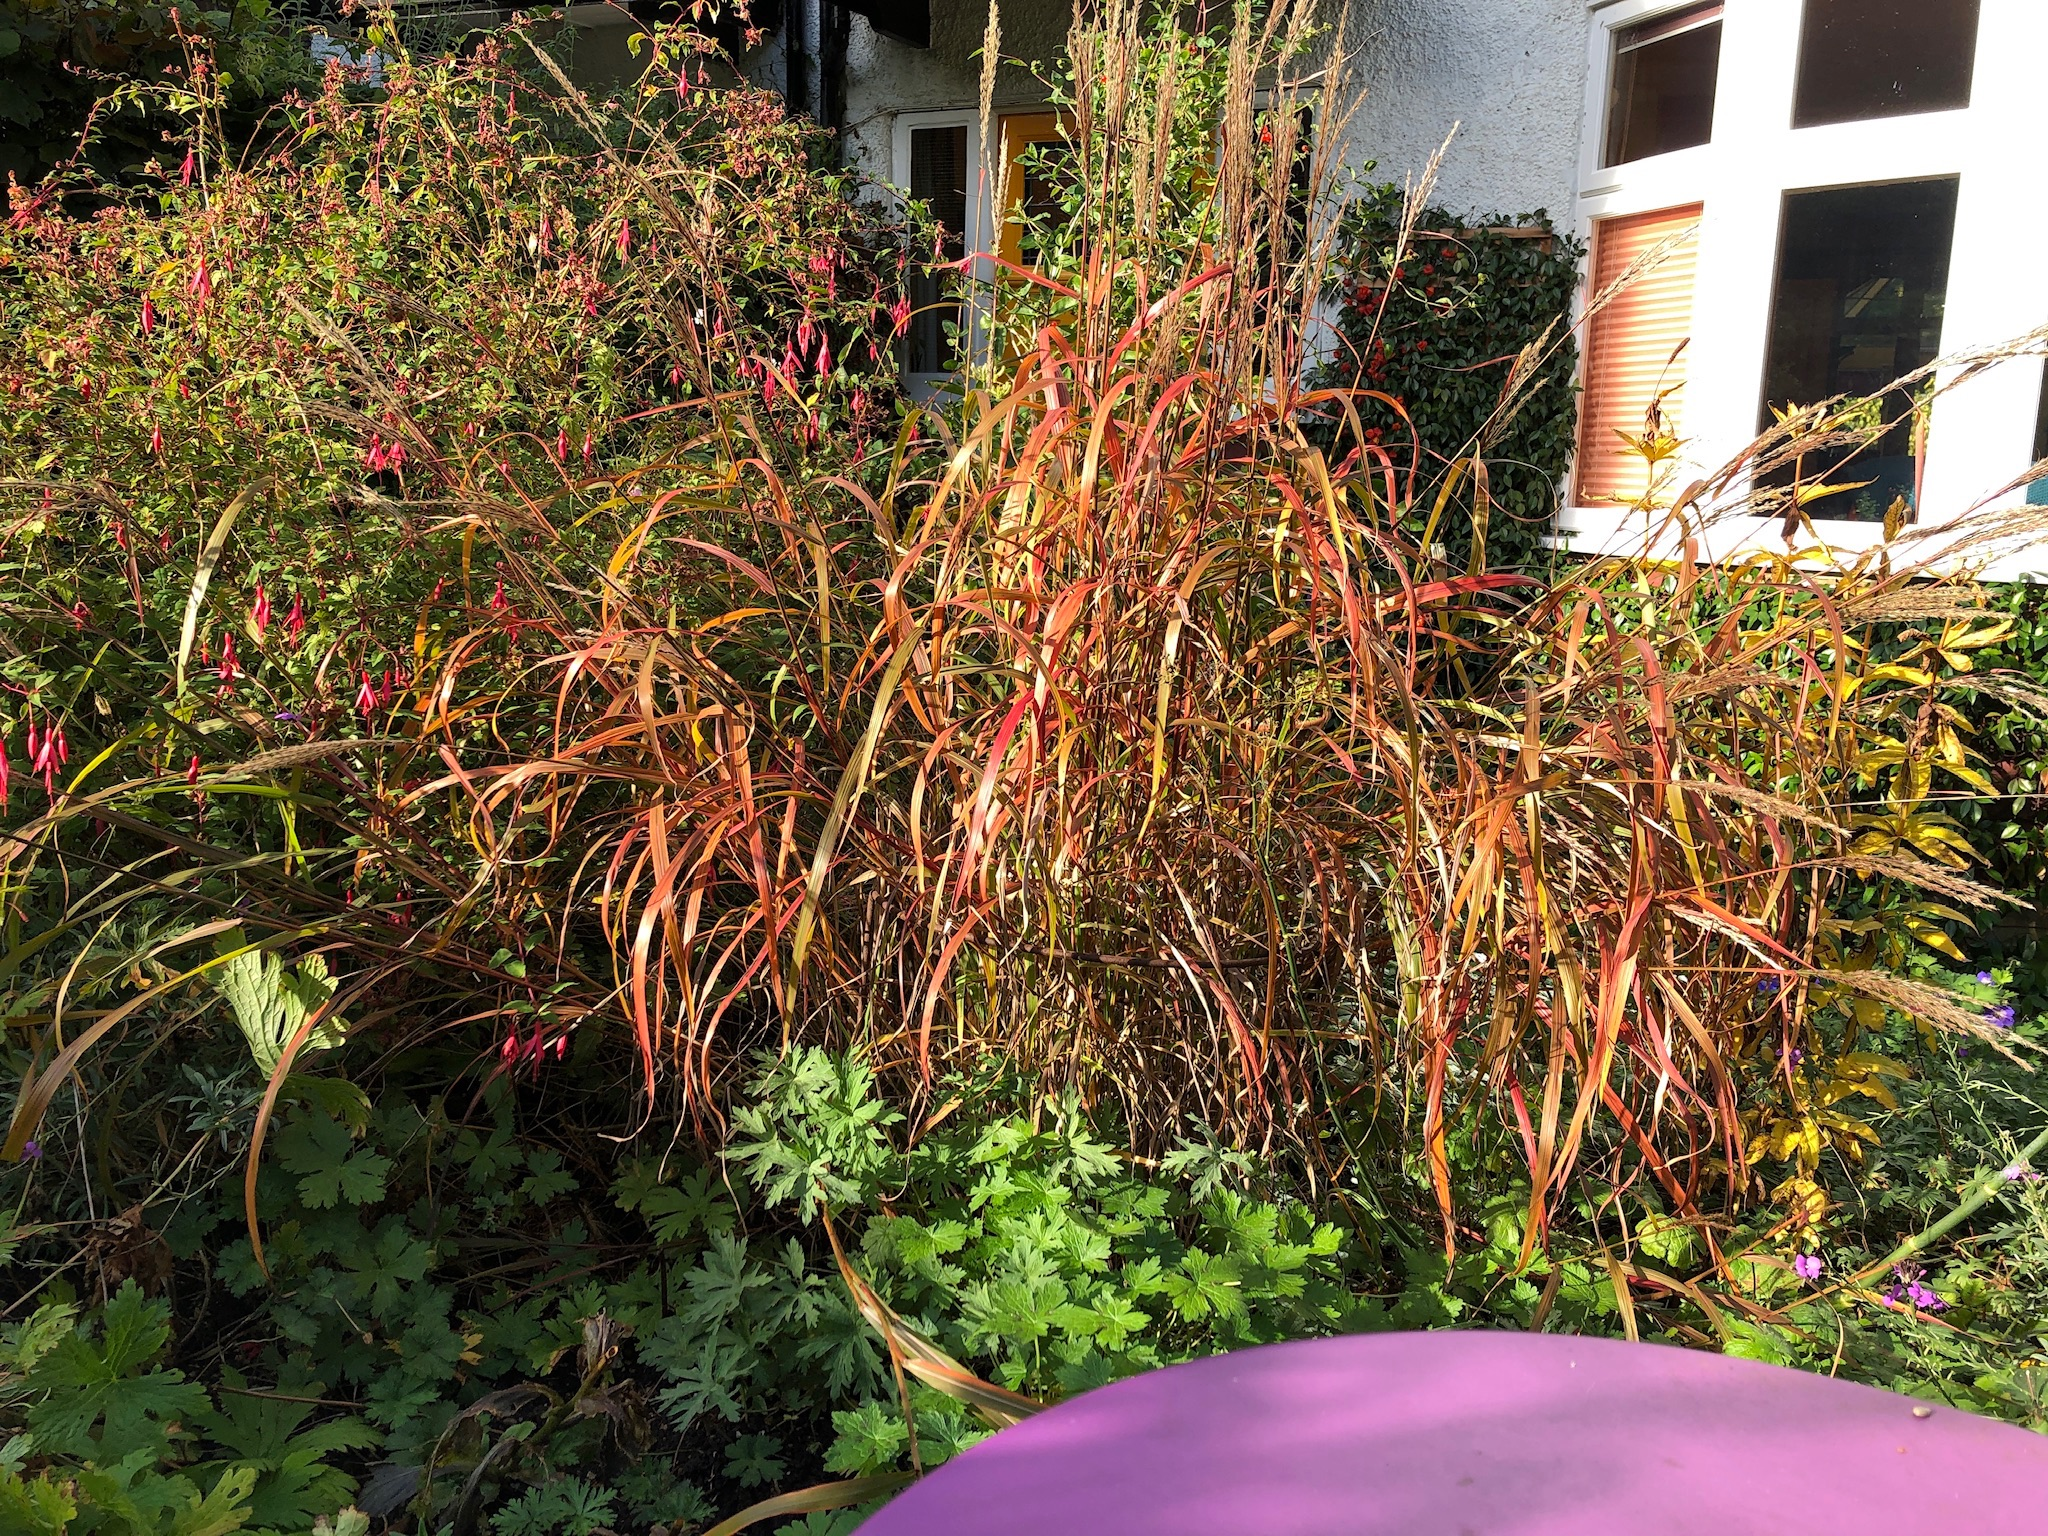 Miscanthus grass in a cottage garden